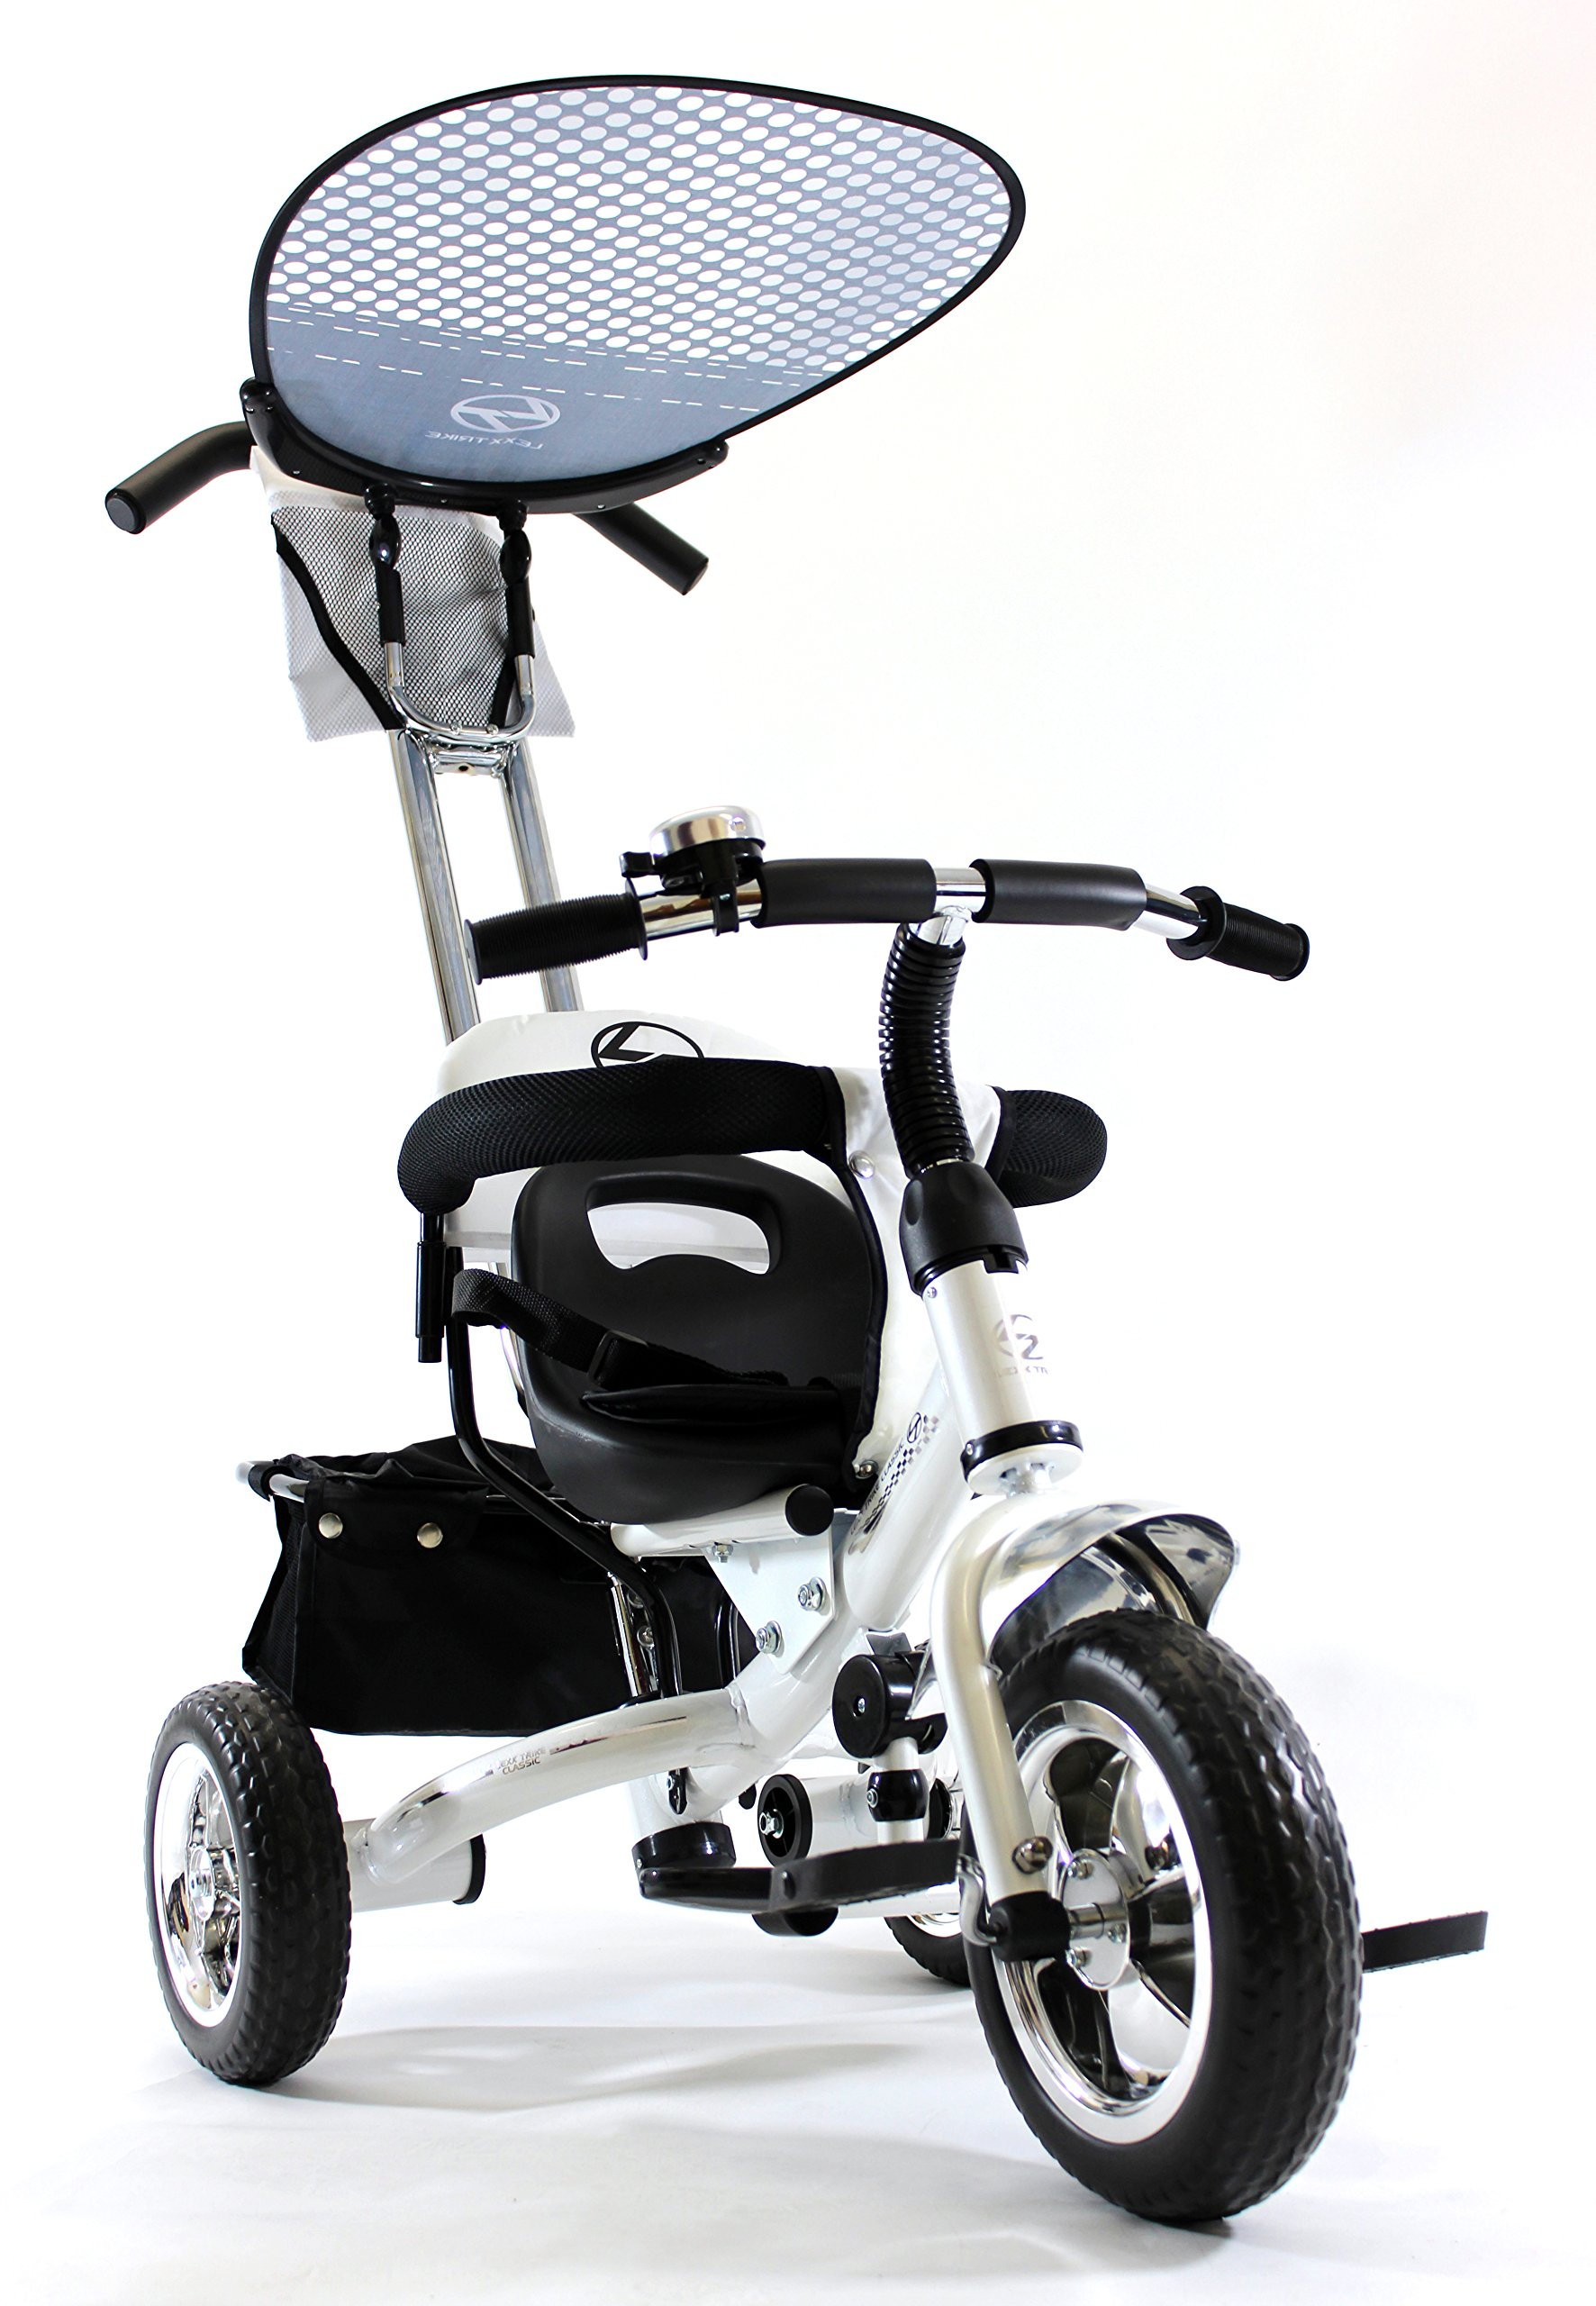 4in1 Lexx Trike Classic Smart Kid's Tricycle 3 Wheel Bike Removable Handle & Canopy NEW WHITE by Lexx Trike (Image #1)